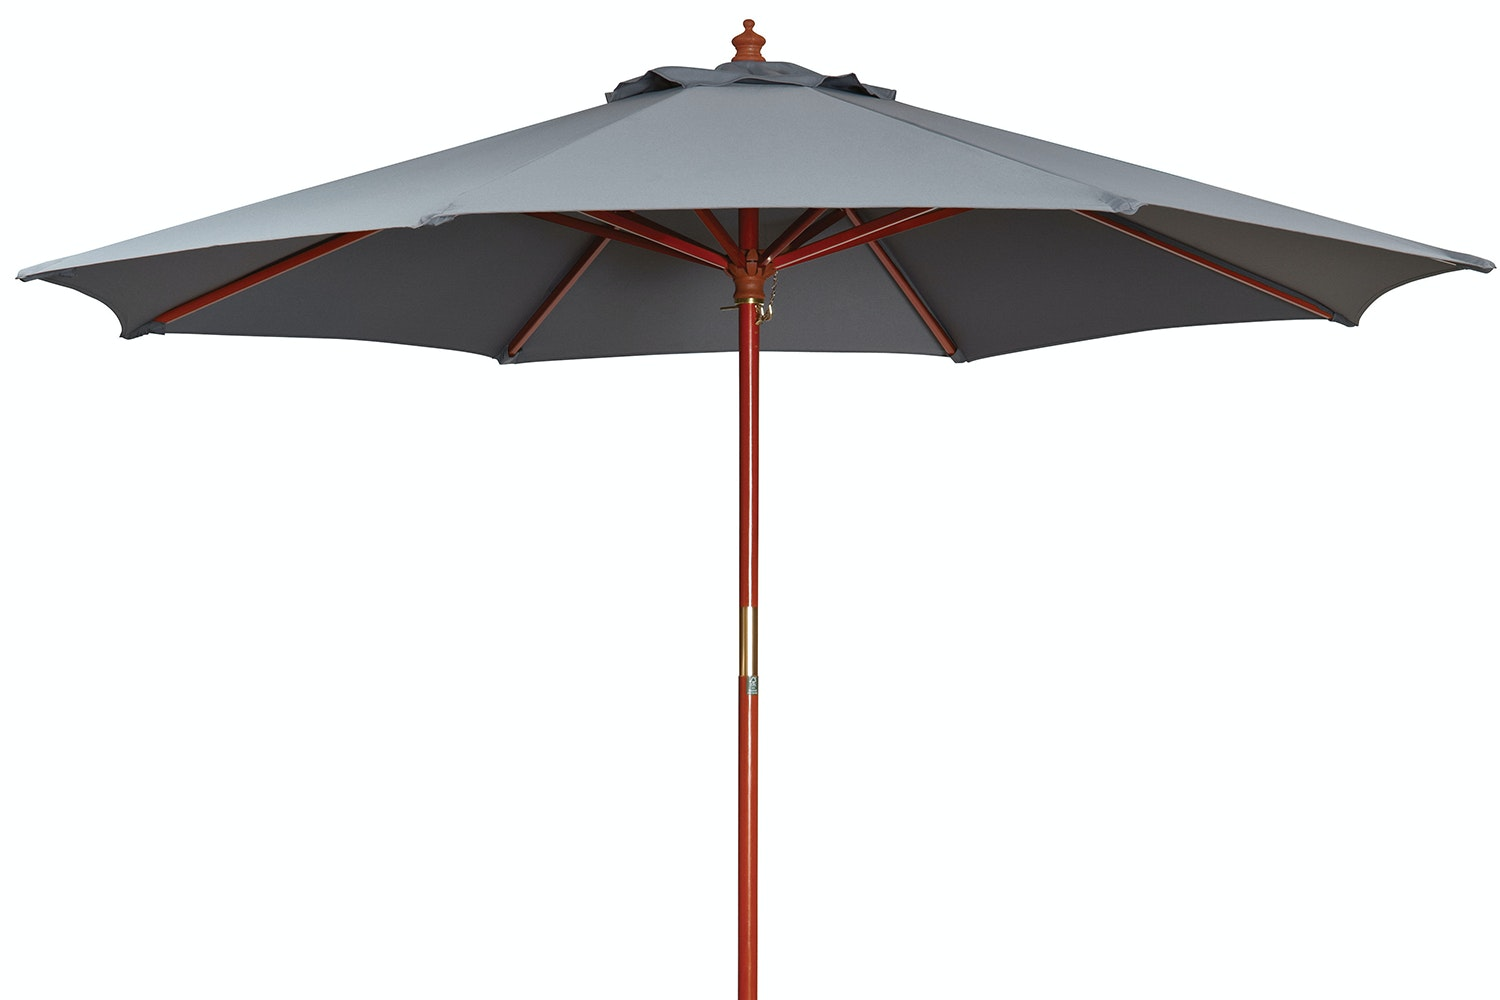 Kosmo 3.5m Outdoor Umbrella - Charcoal - Peros